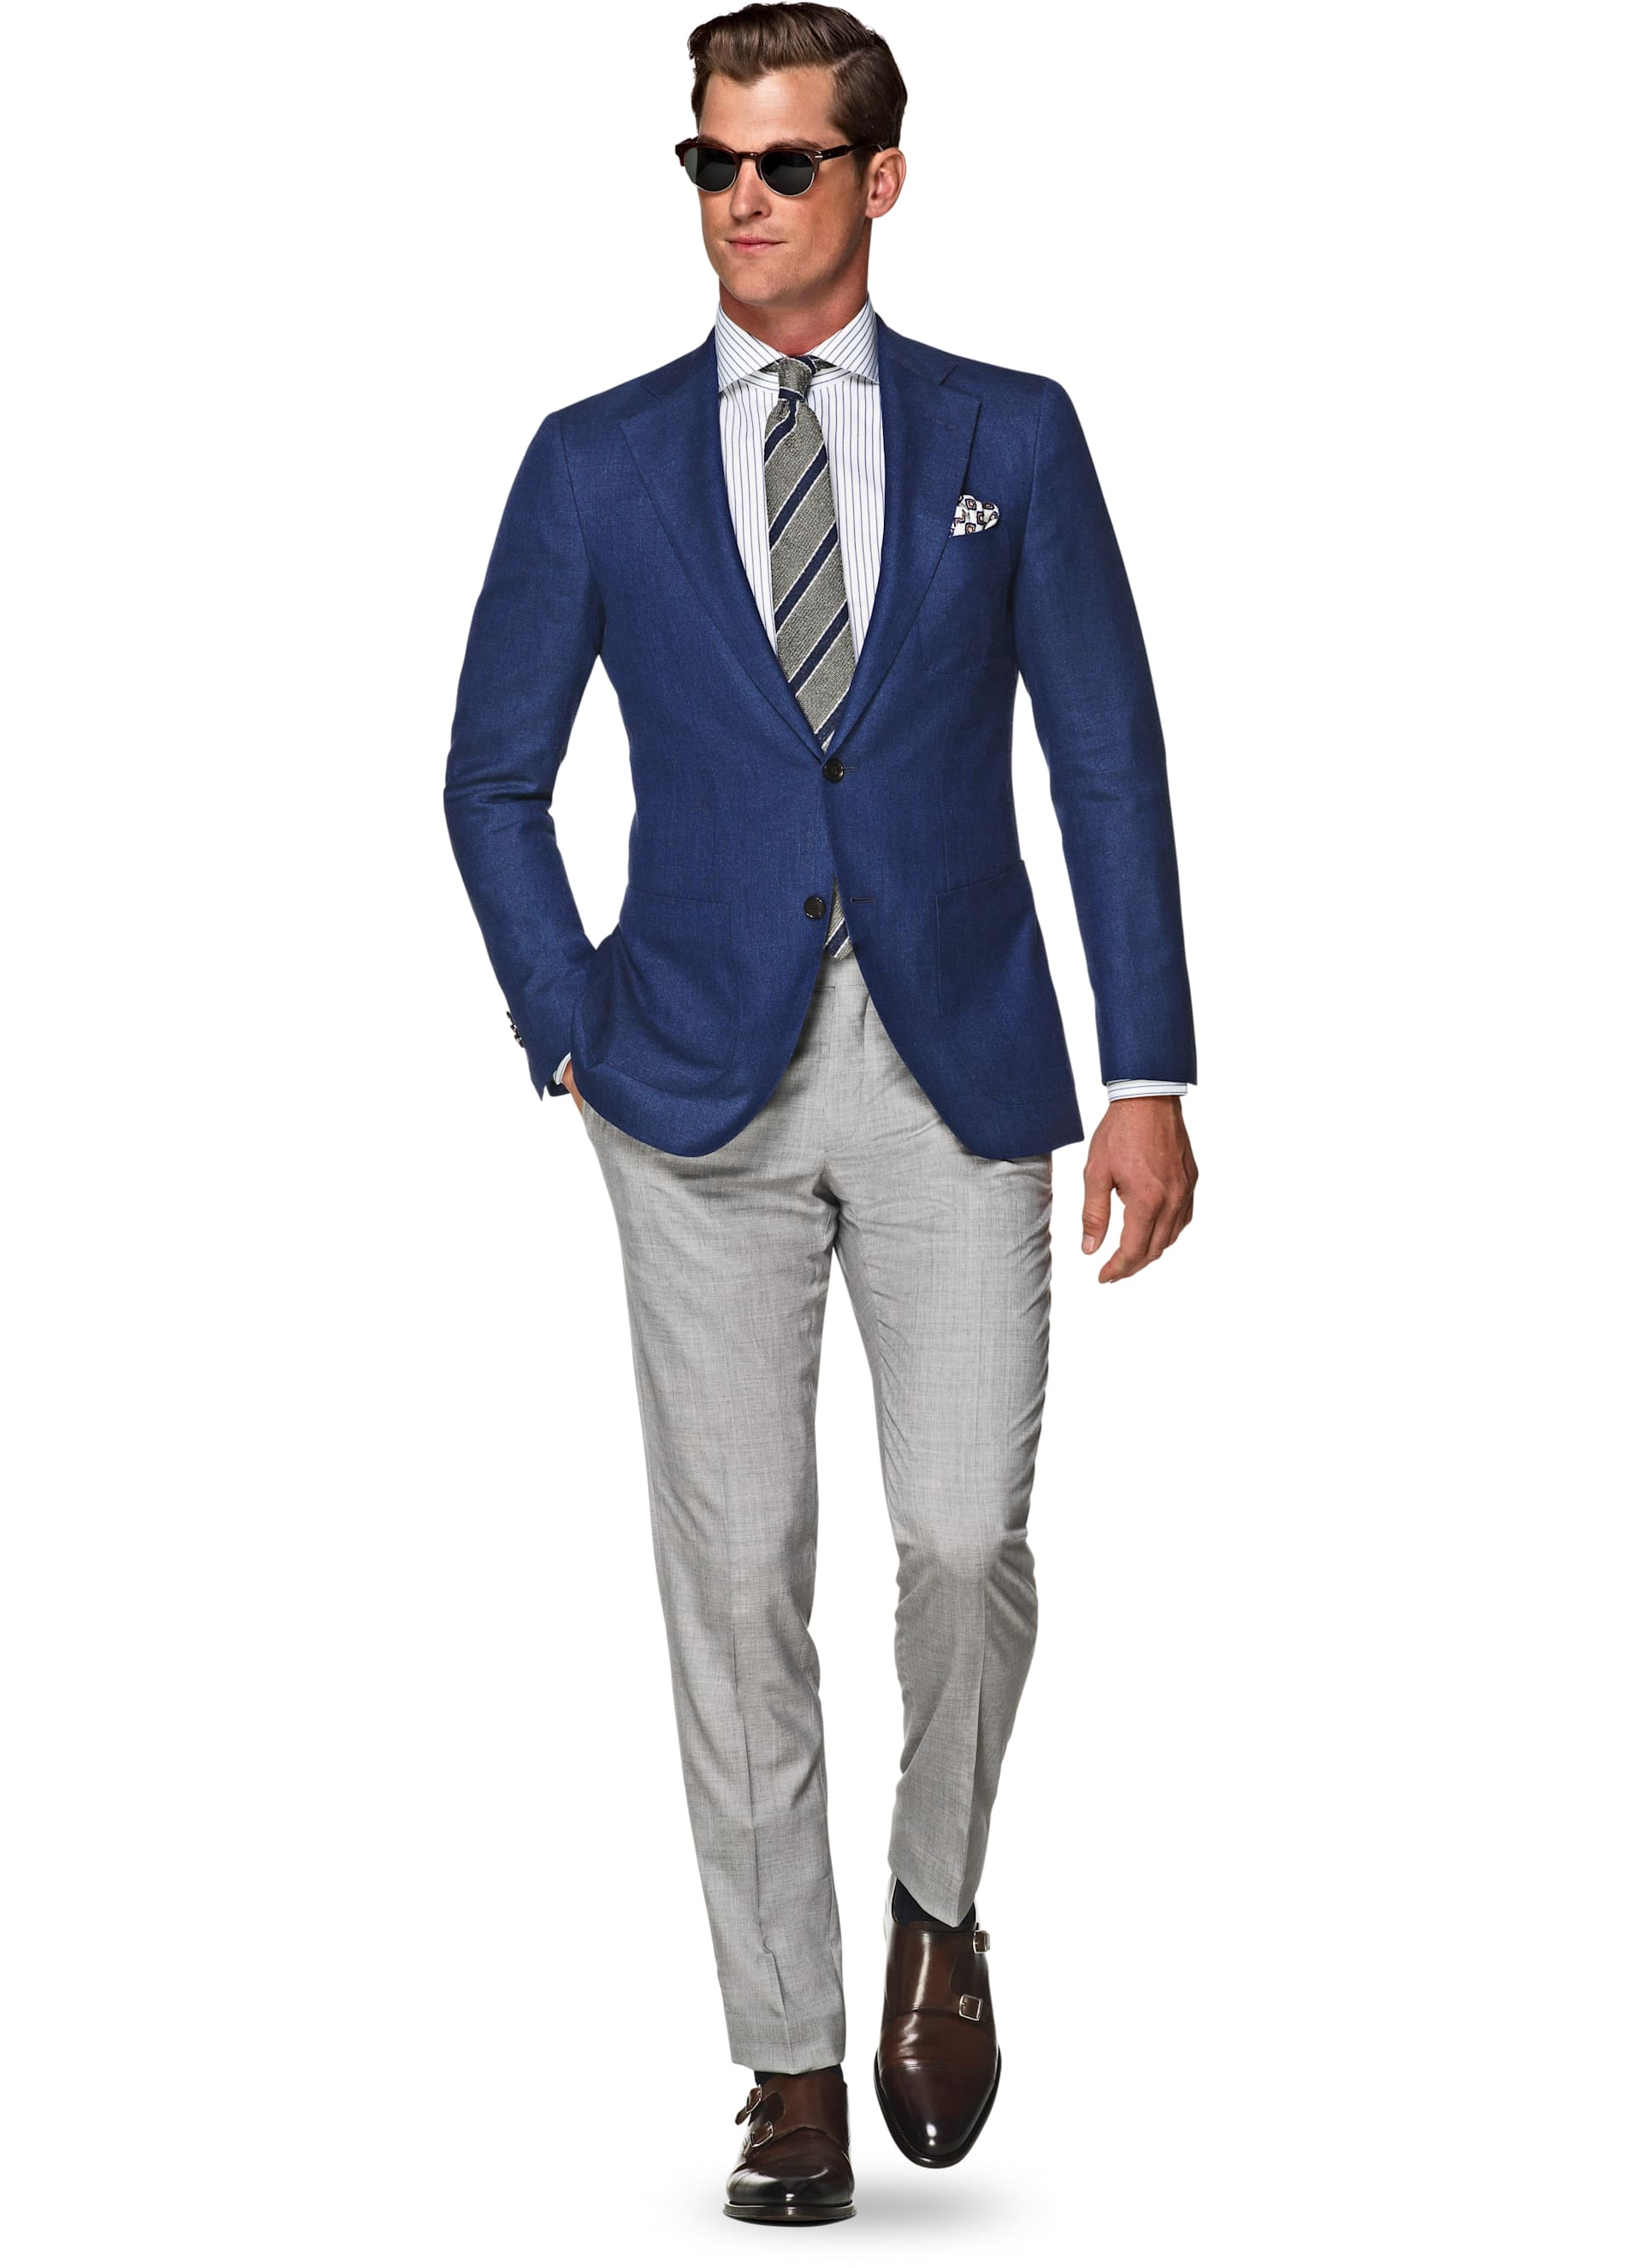 Blue Sport Coat With Grey Pants - The Best Pants 2017